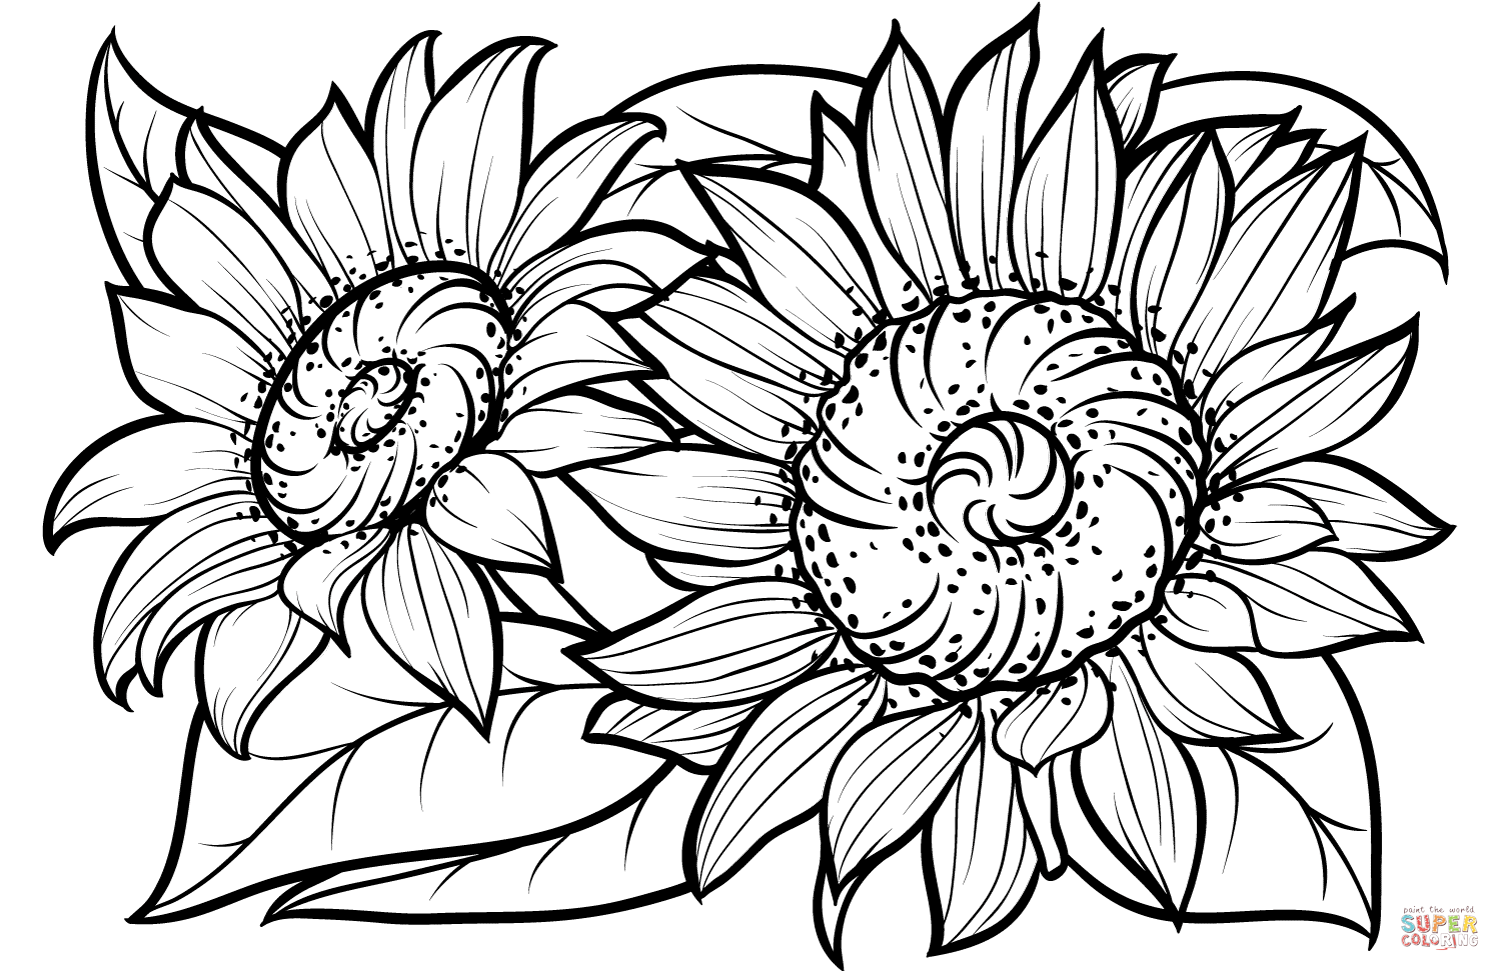 sunflower coloring page sunflower drawing simple at getdrawings free download sunflower coloring page